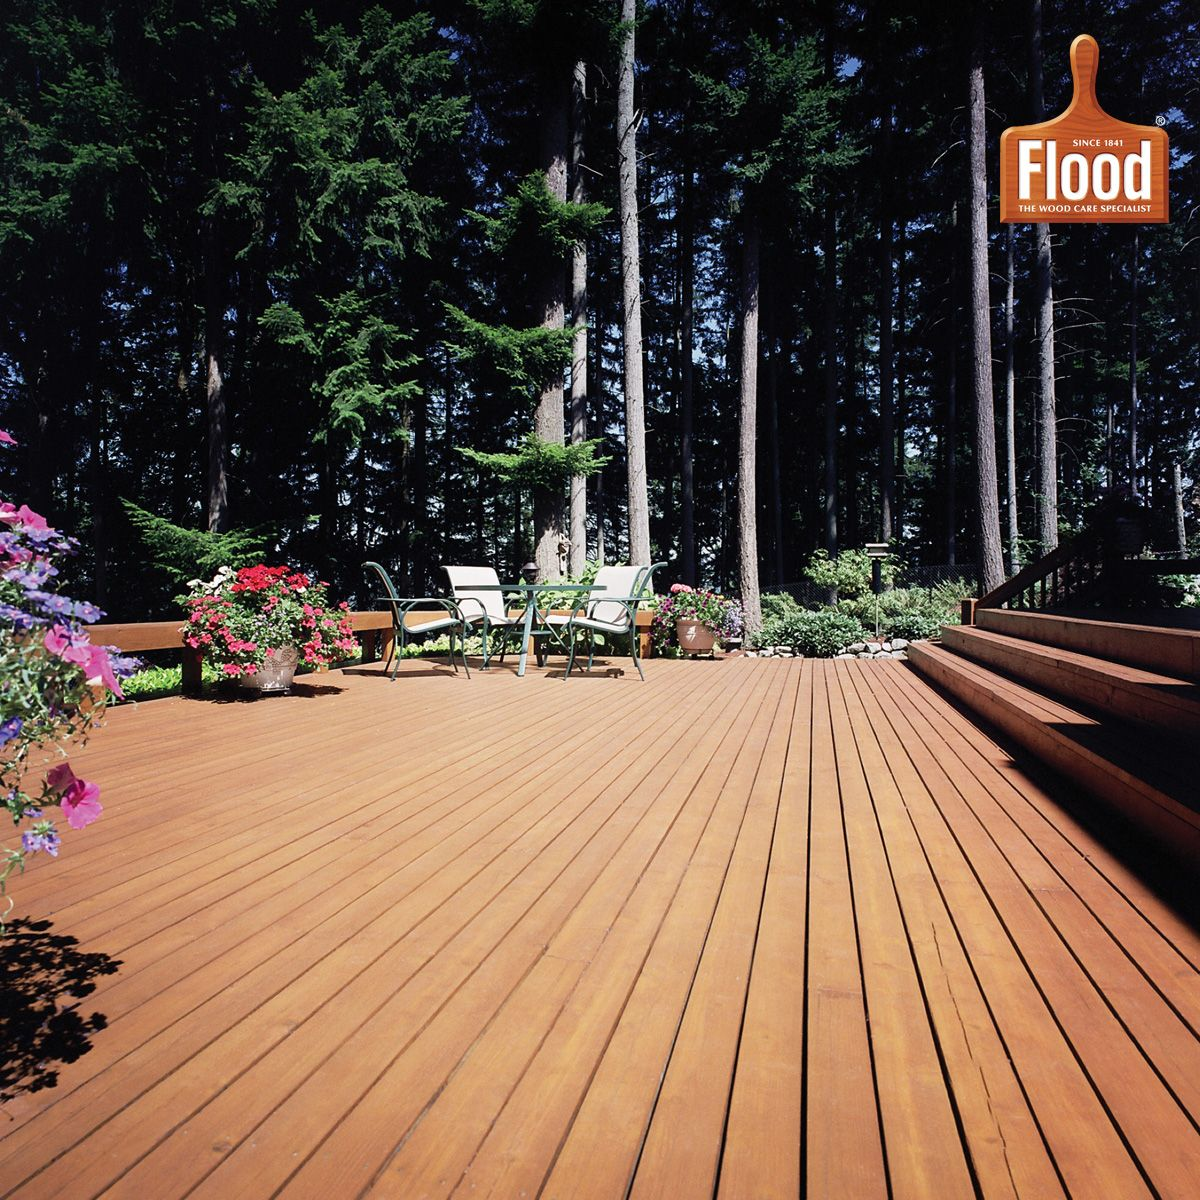 Featuring Flood Cwf Uv In Cedar